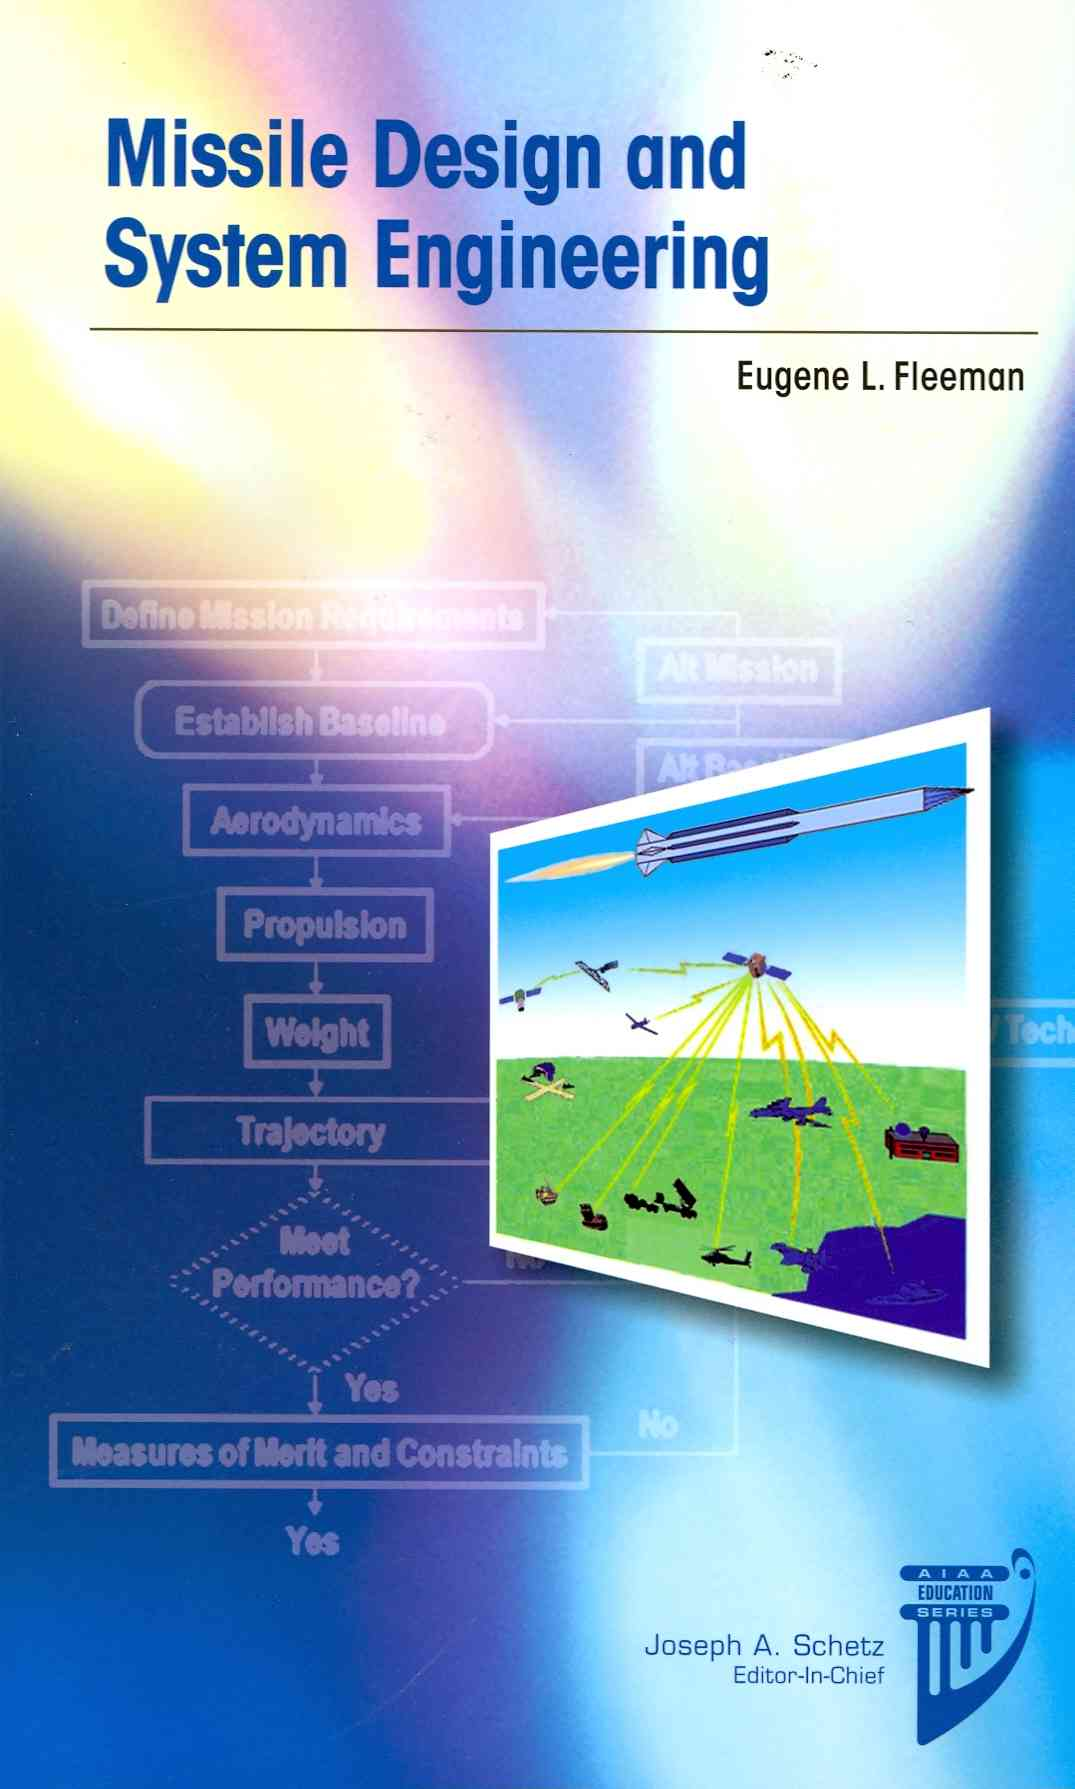 Missile Design and Systems Engineering